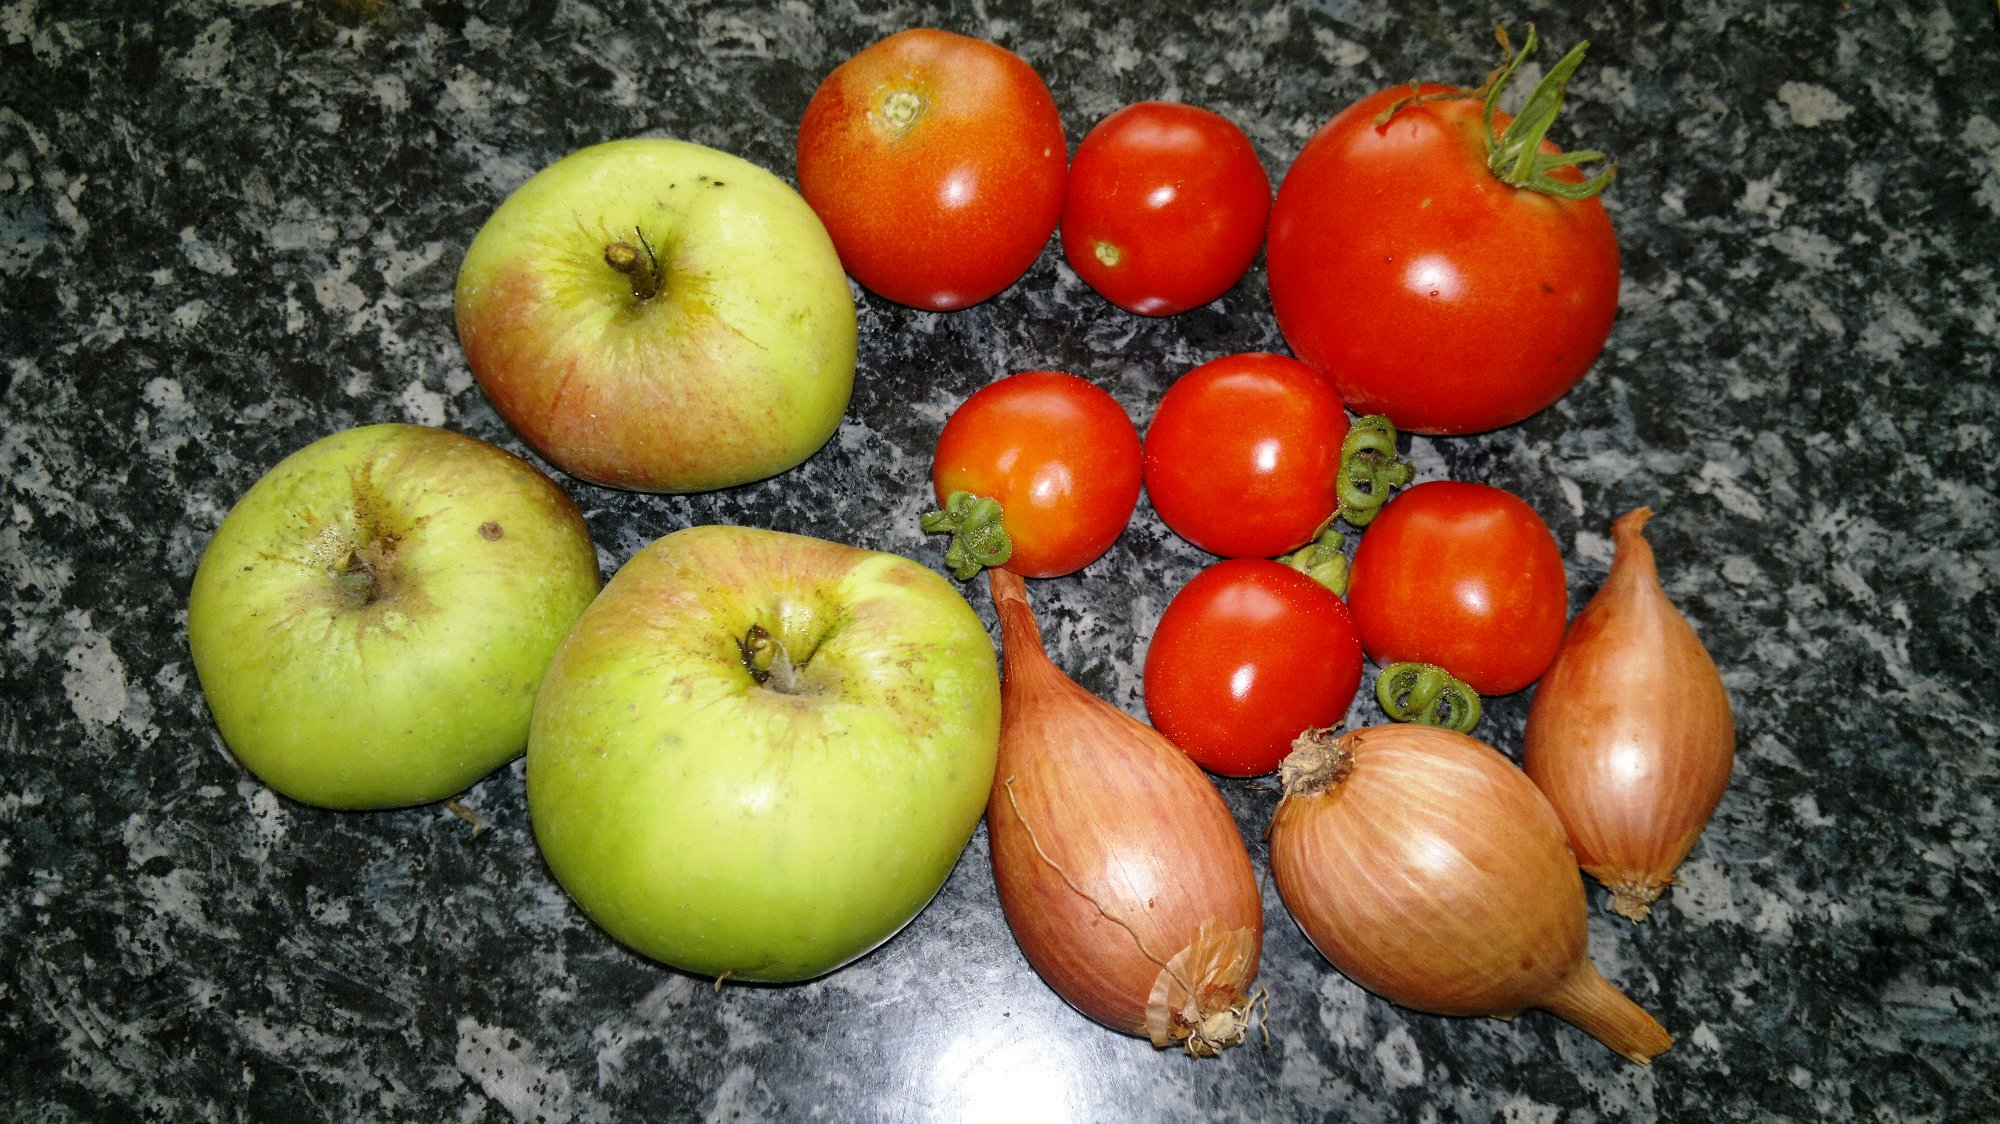 A fruity base for the sauce; Bramley apples, tomatoes, and shallots